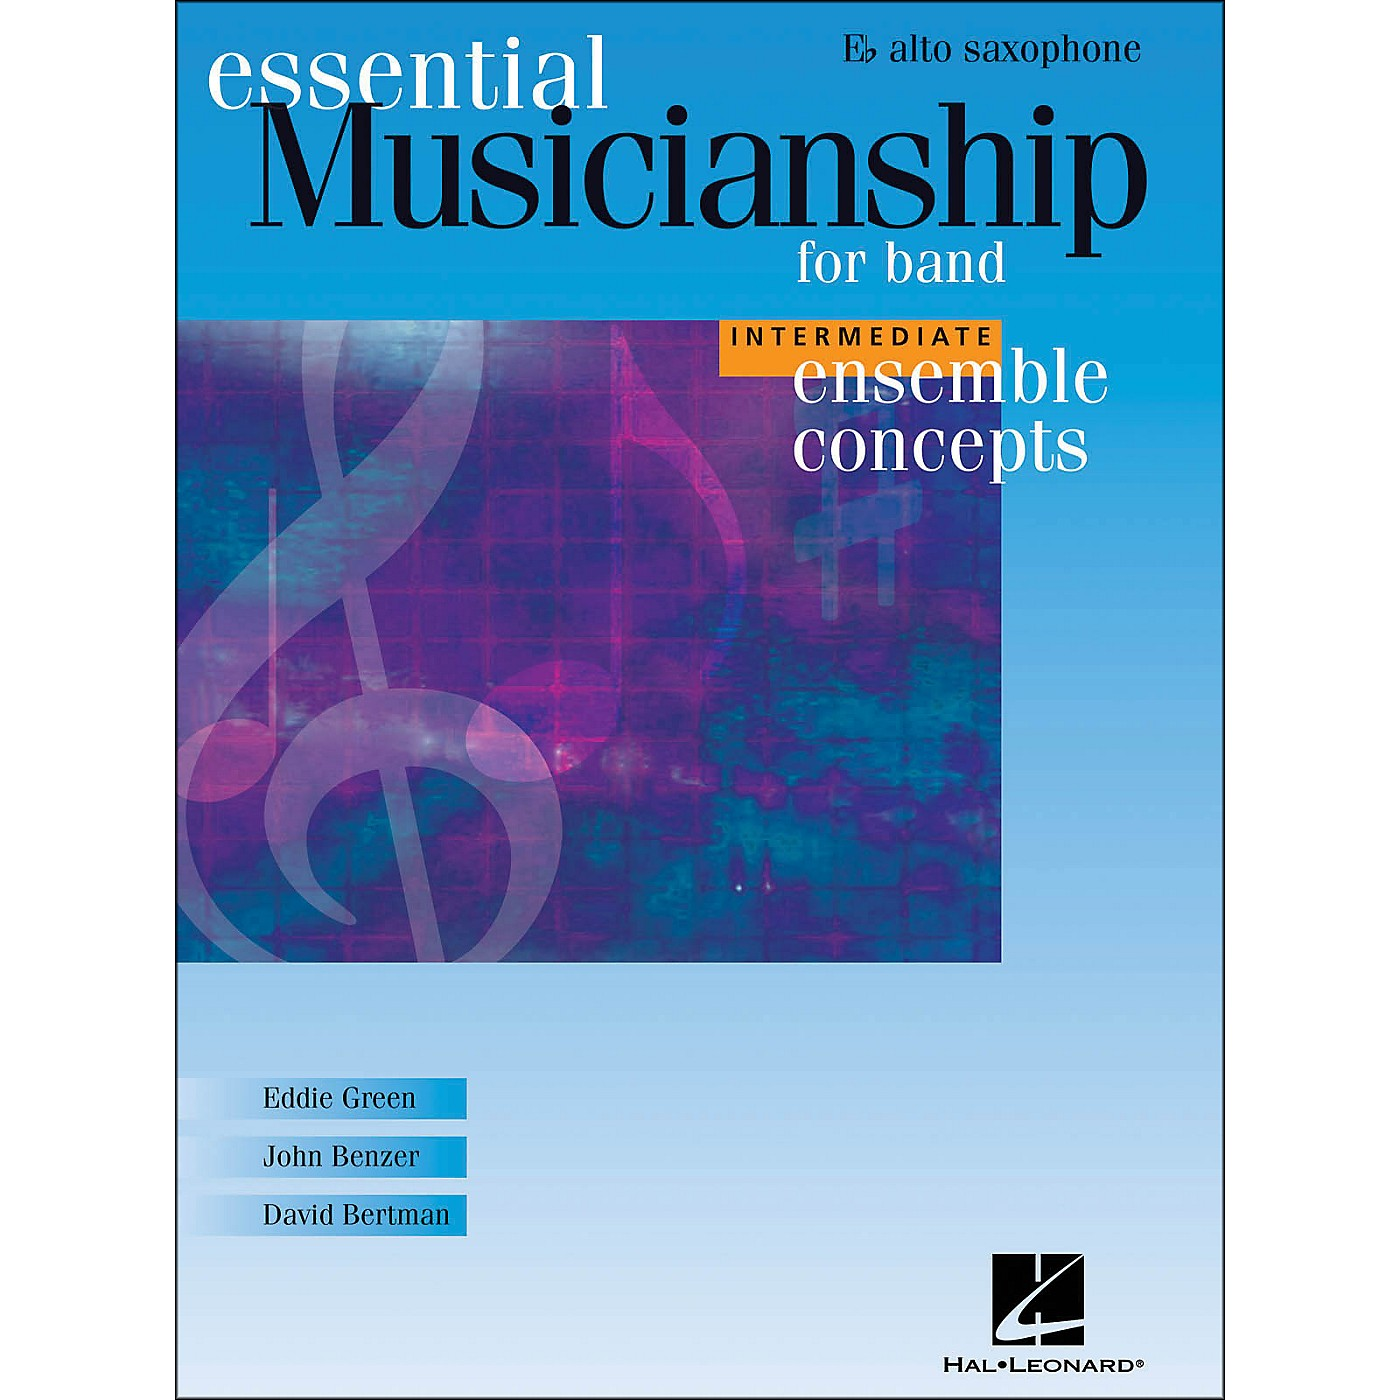 Hal Leonard Ensemble Concepts for Band - Intermediate Level Alto Sax thumbnail